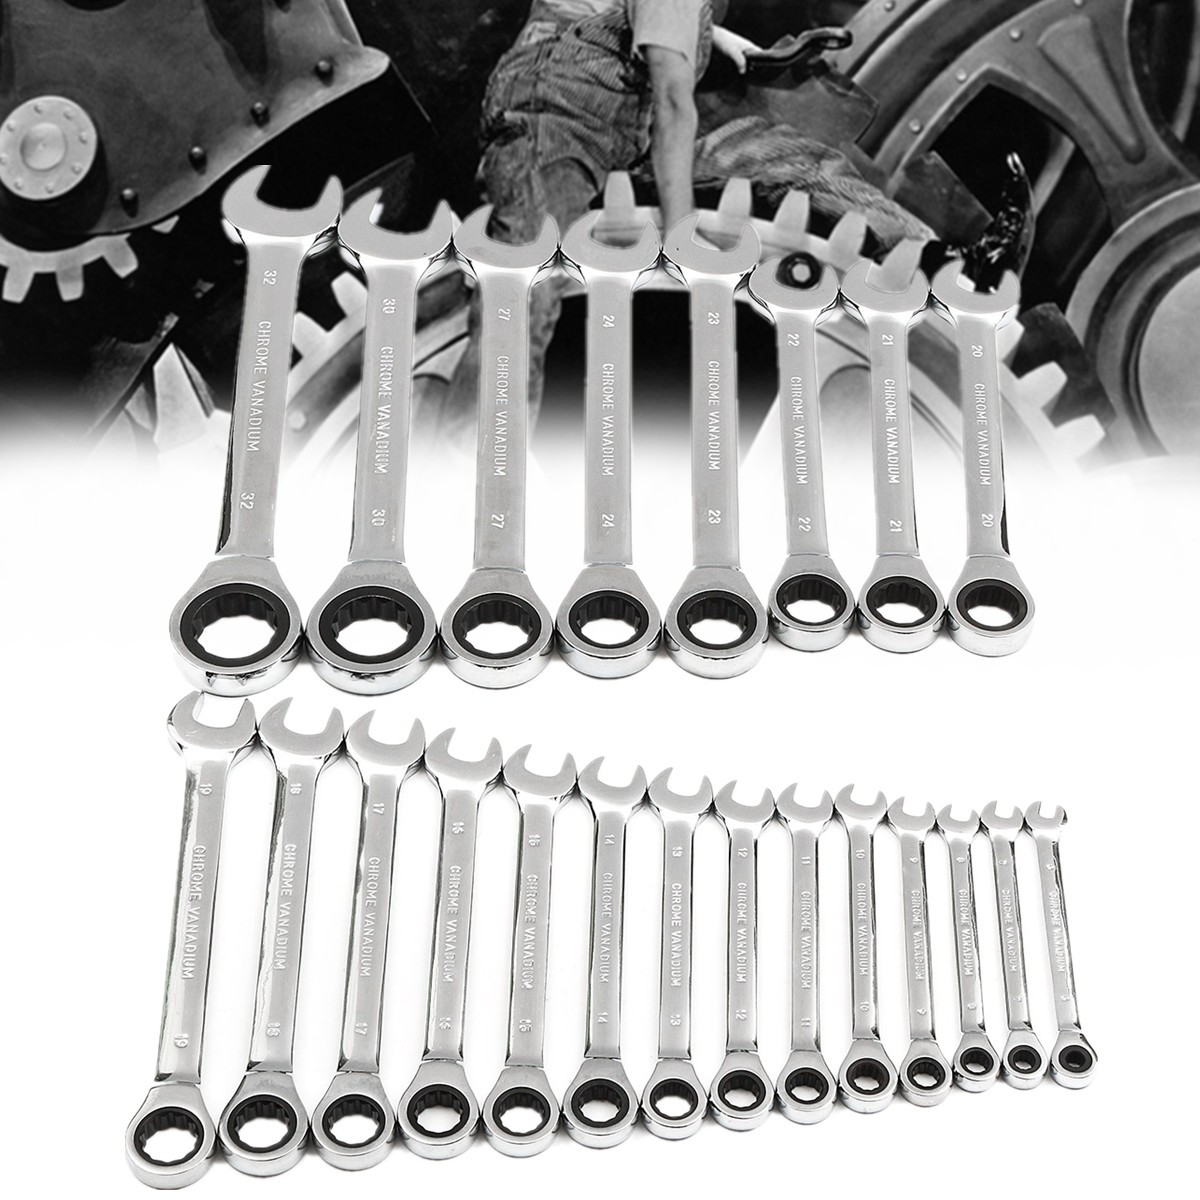 6mm-32mm Spanner  Steel Metric Fixed Head Ratcheting Ratchet Open End & Ring Chrome Vanadium Steel Mirror Polished